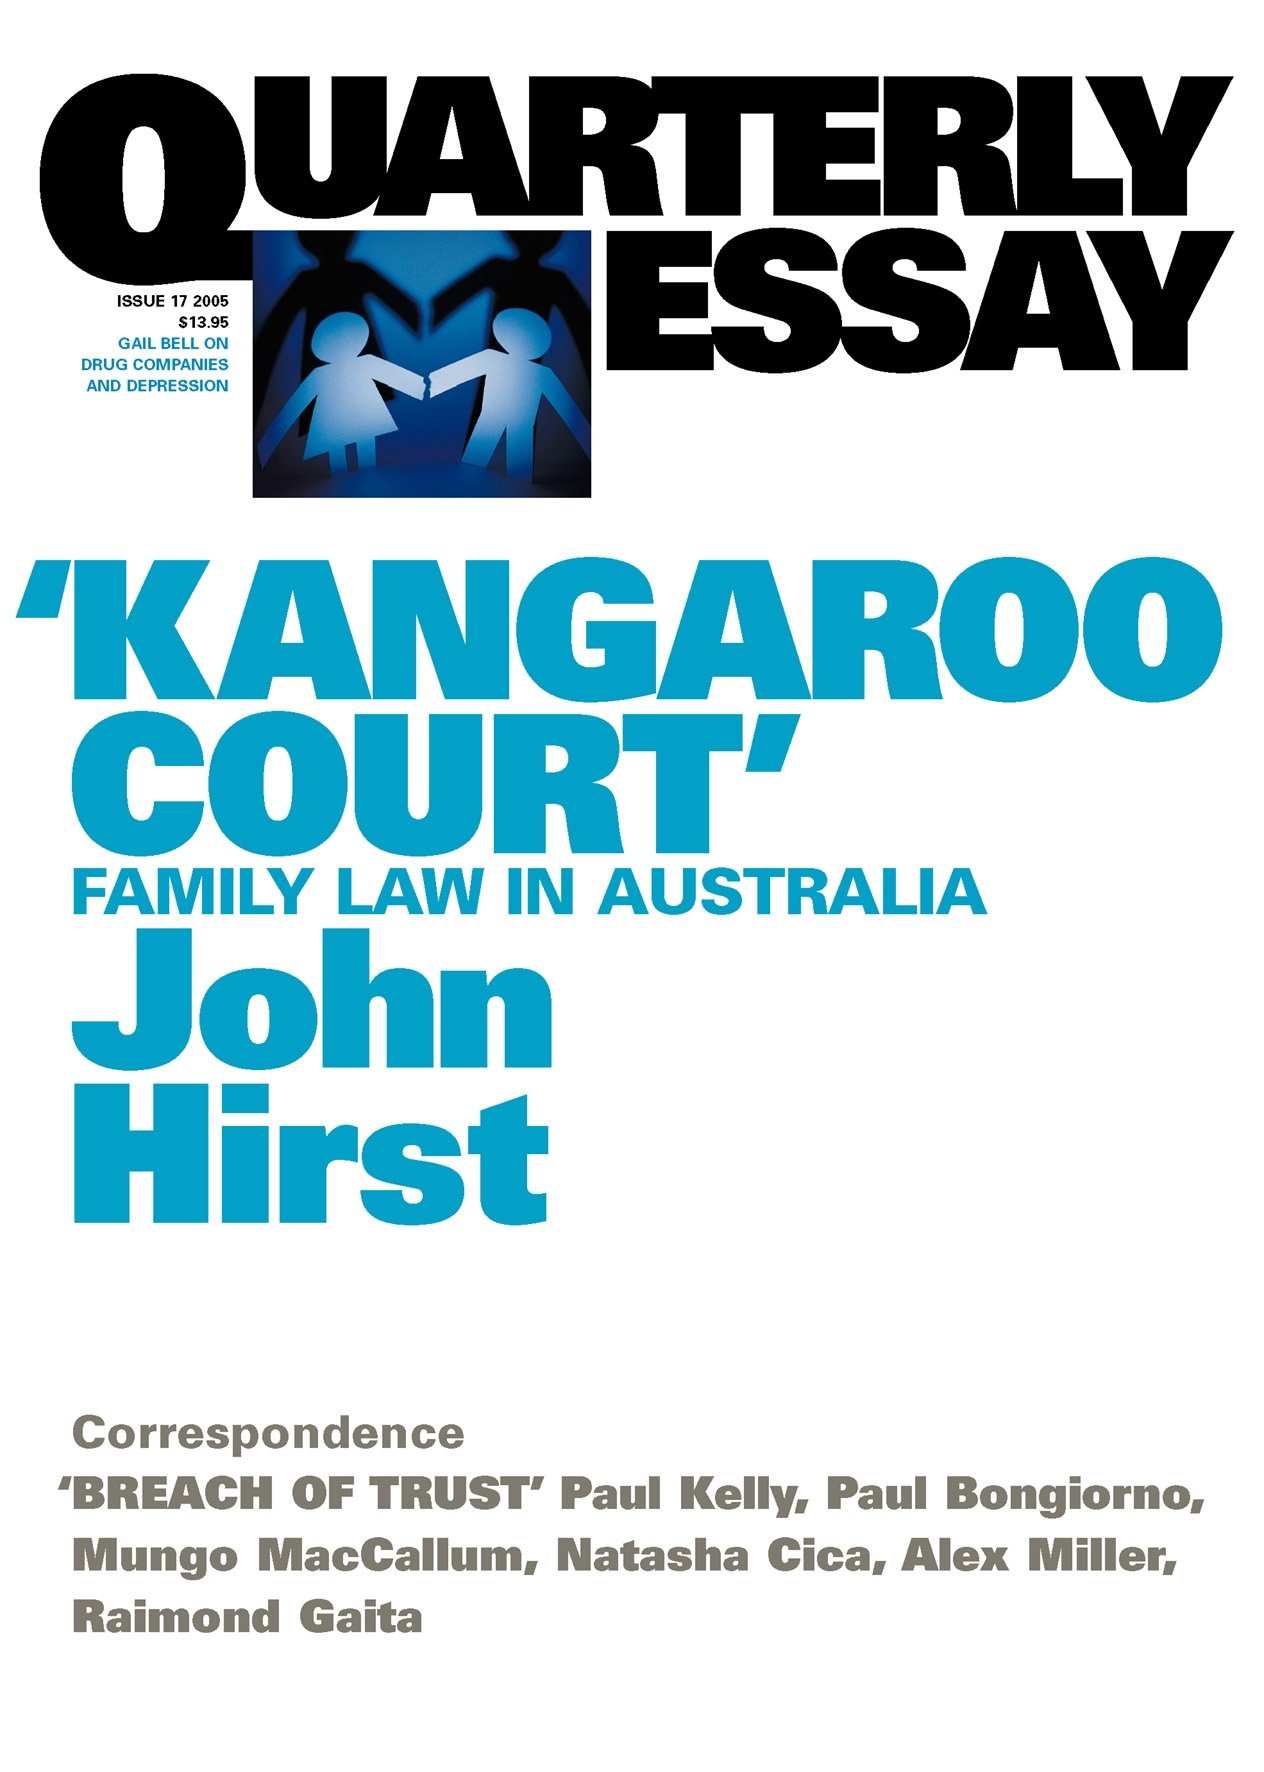 trading law in australia essay The asymmetry of the separation of powers doctrine in australia law29 this essay will the asymmetry of the separation of powers doctrine ) in the.